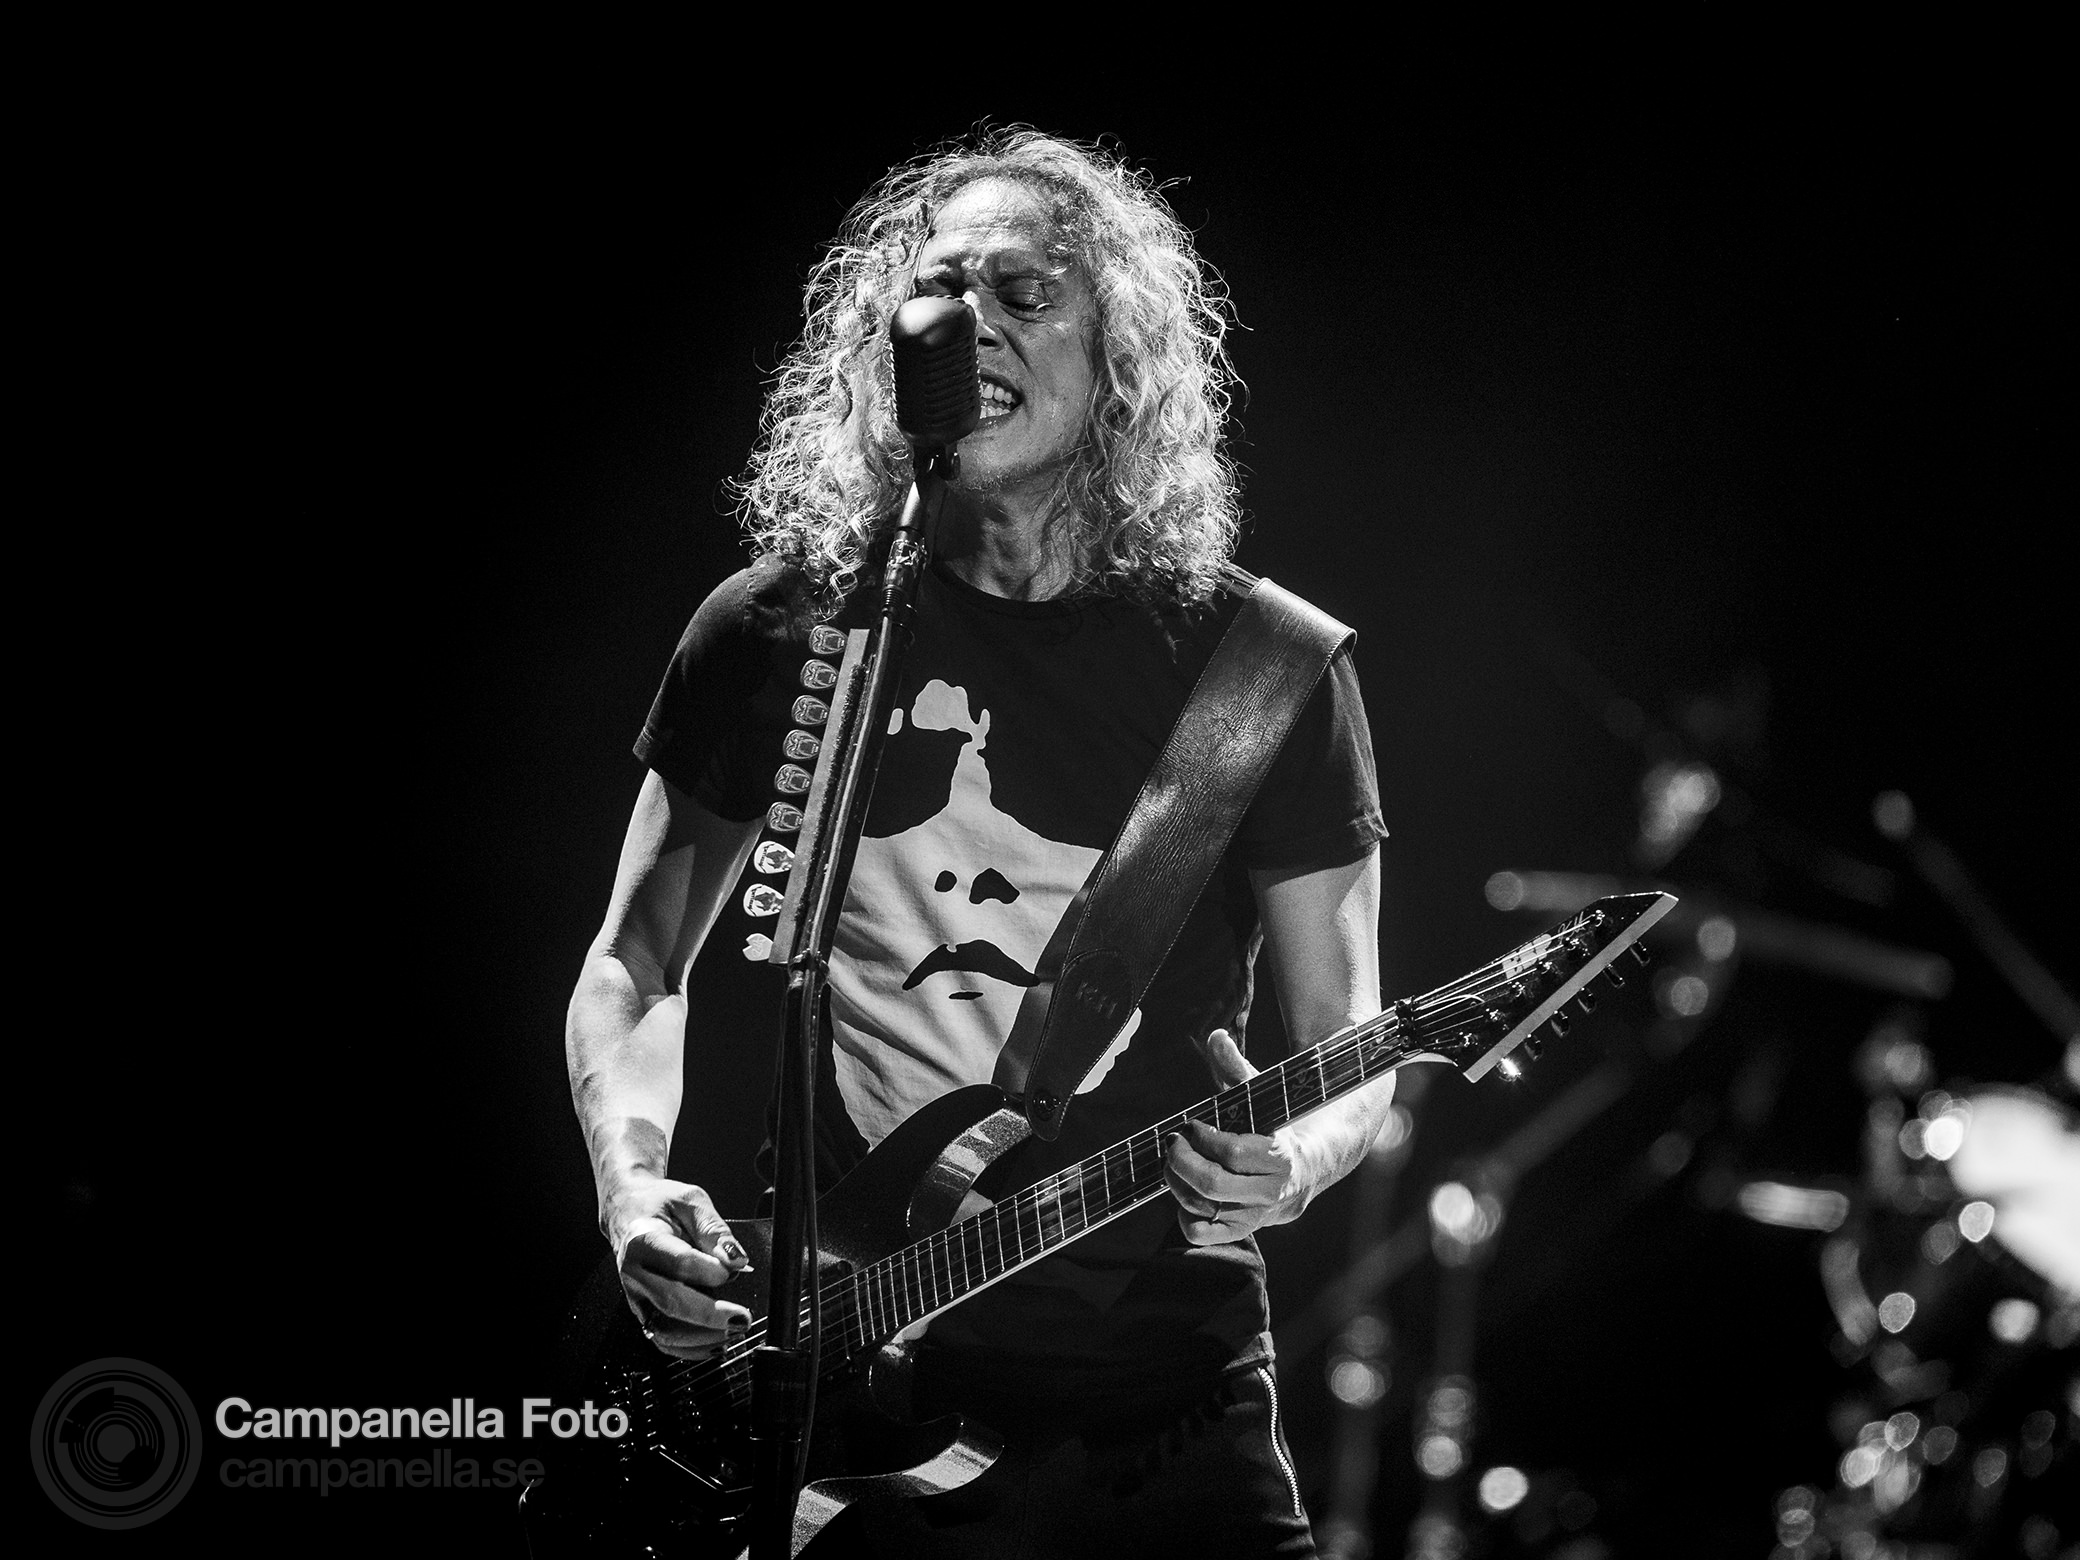 Metallica performs in Stockholm - Michael Campanella Photography